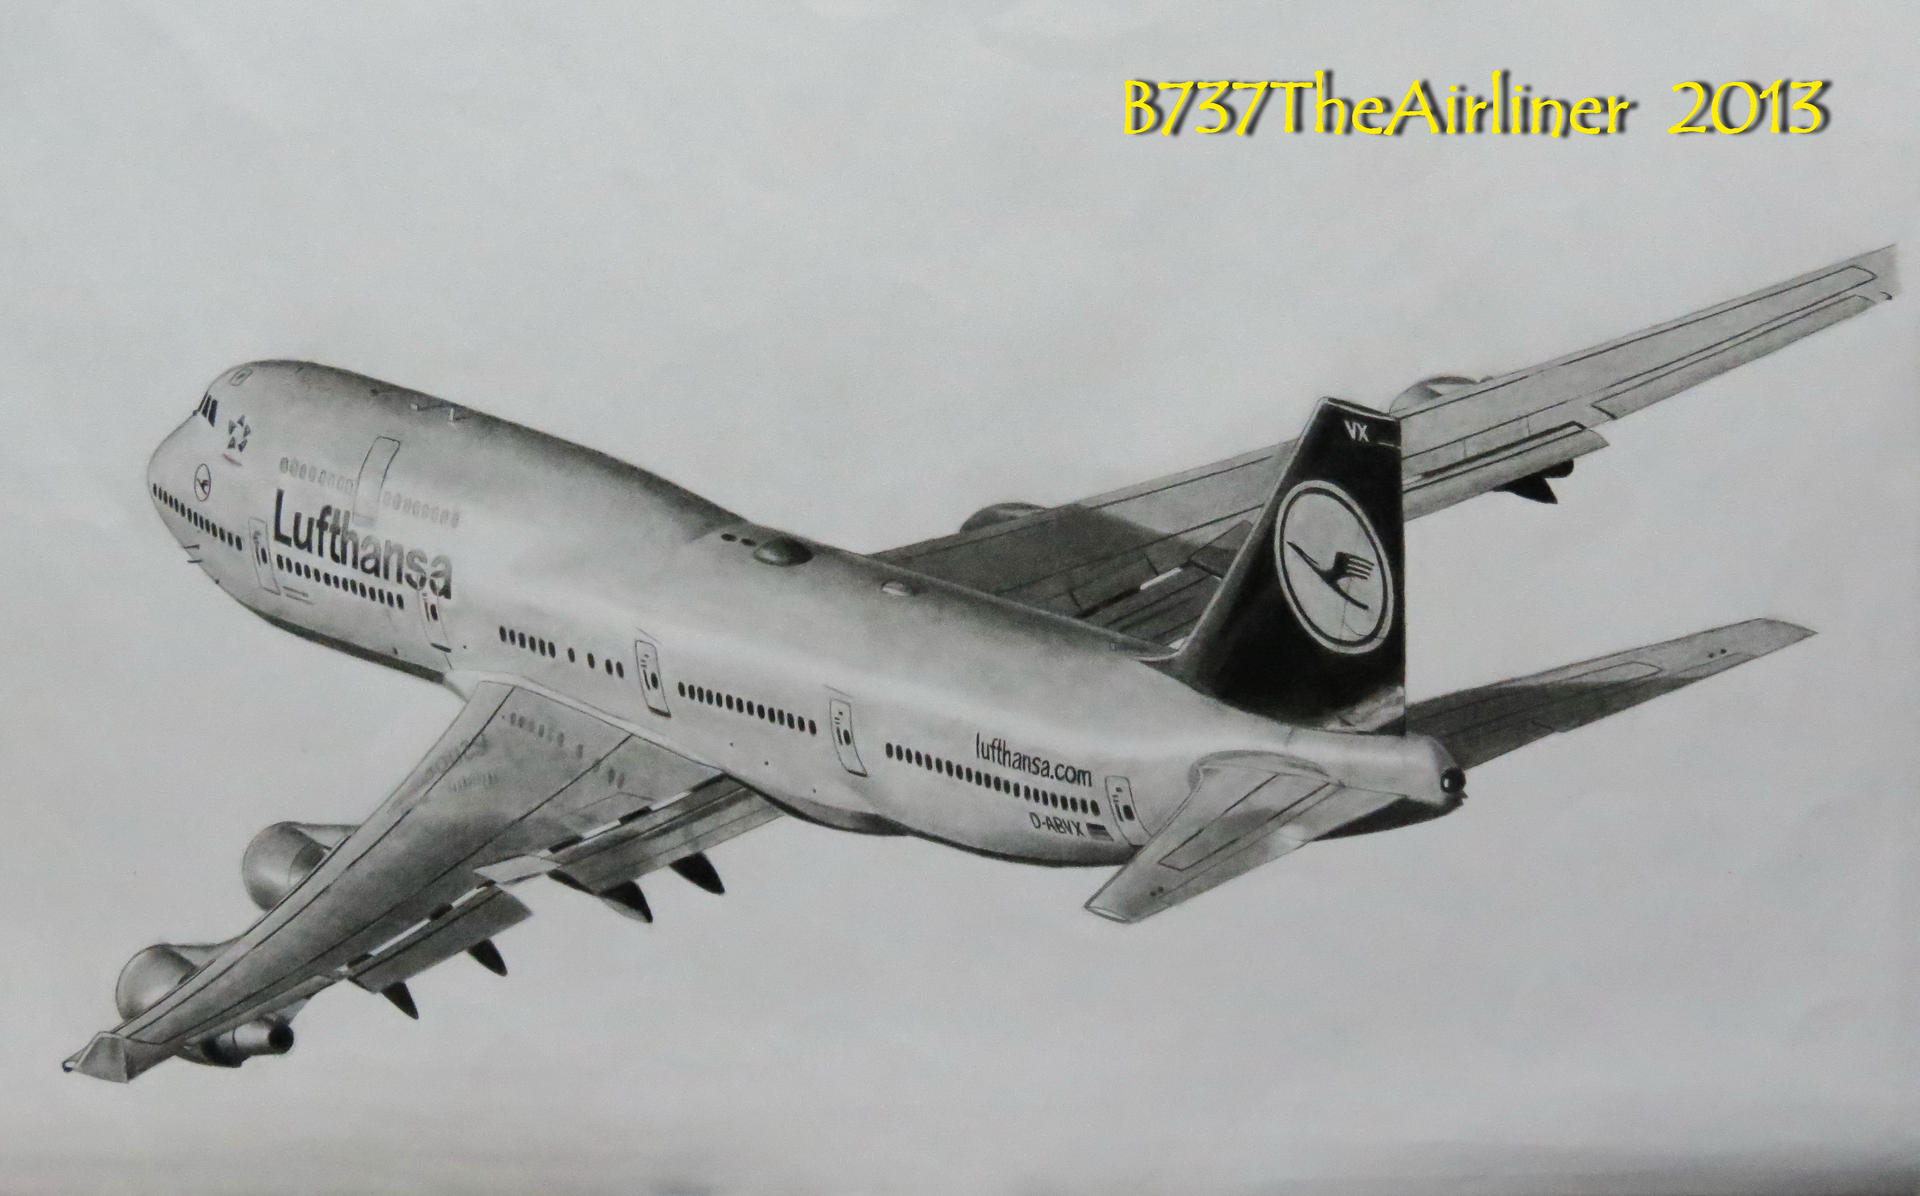 Lufthansa Boeing 747 400 Realistic Drawing By A320theairliner On